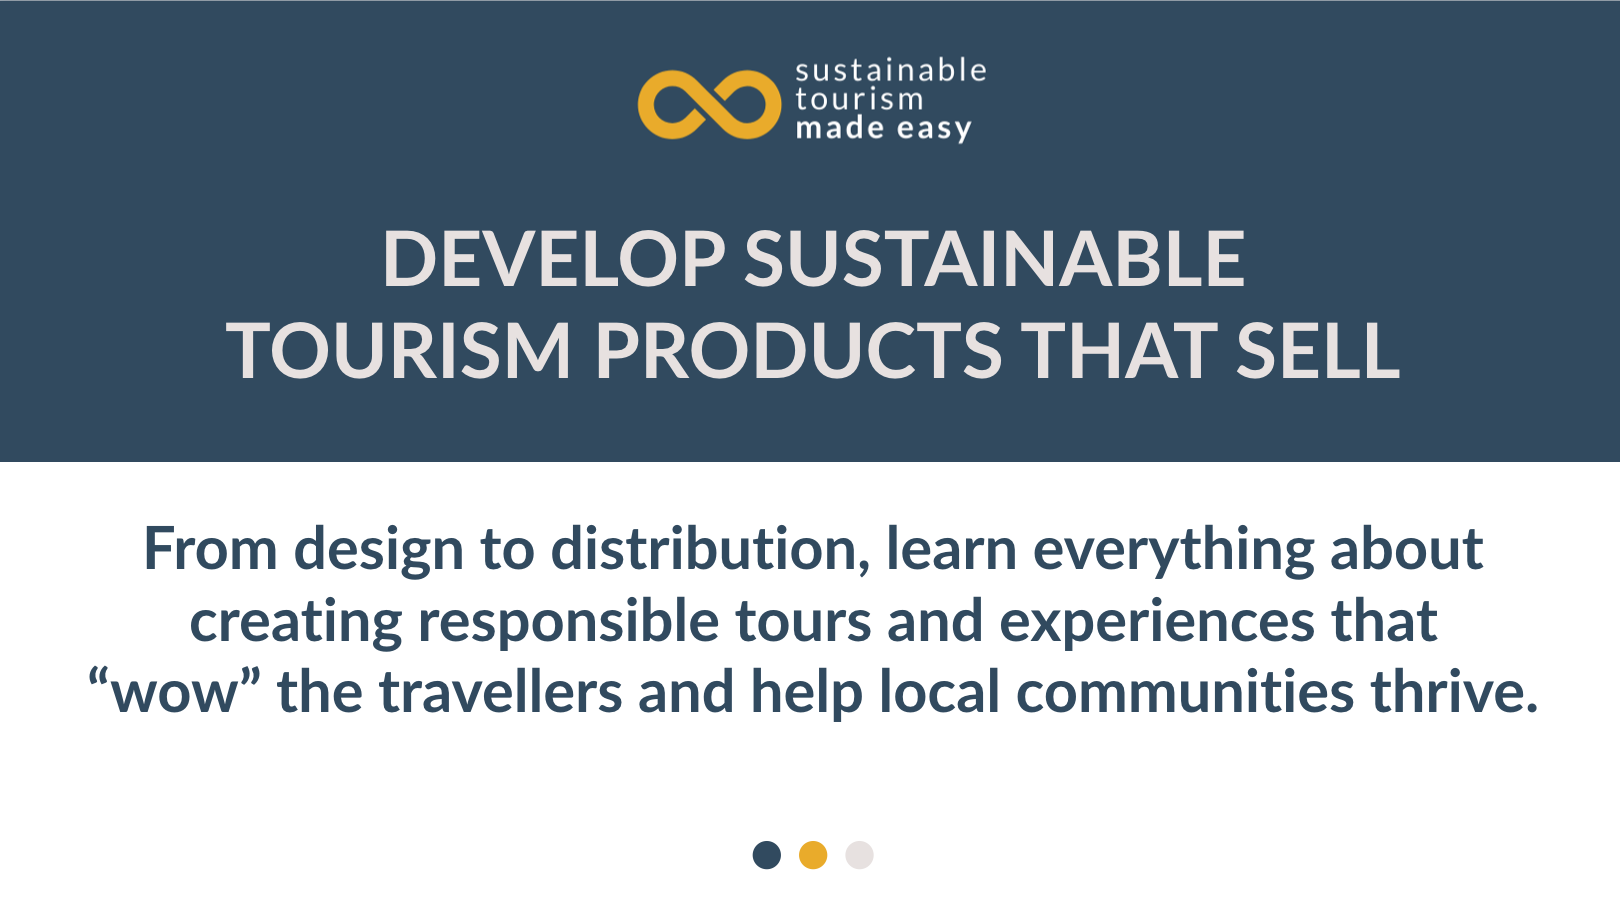 Develop sustainable tourism products that sell